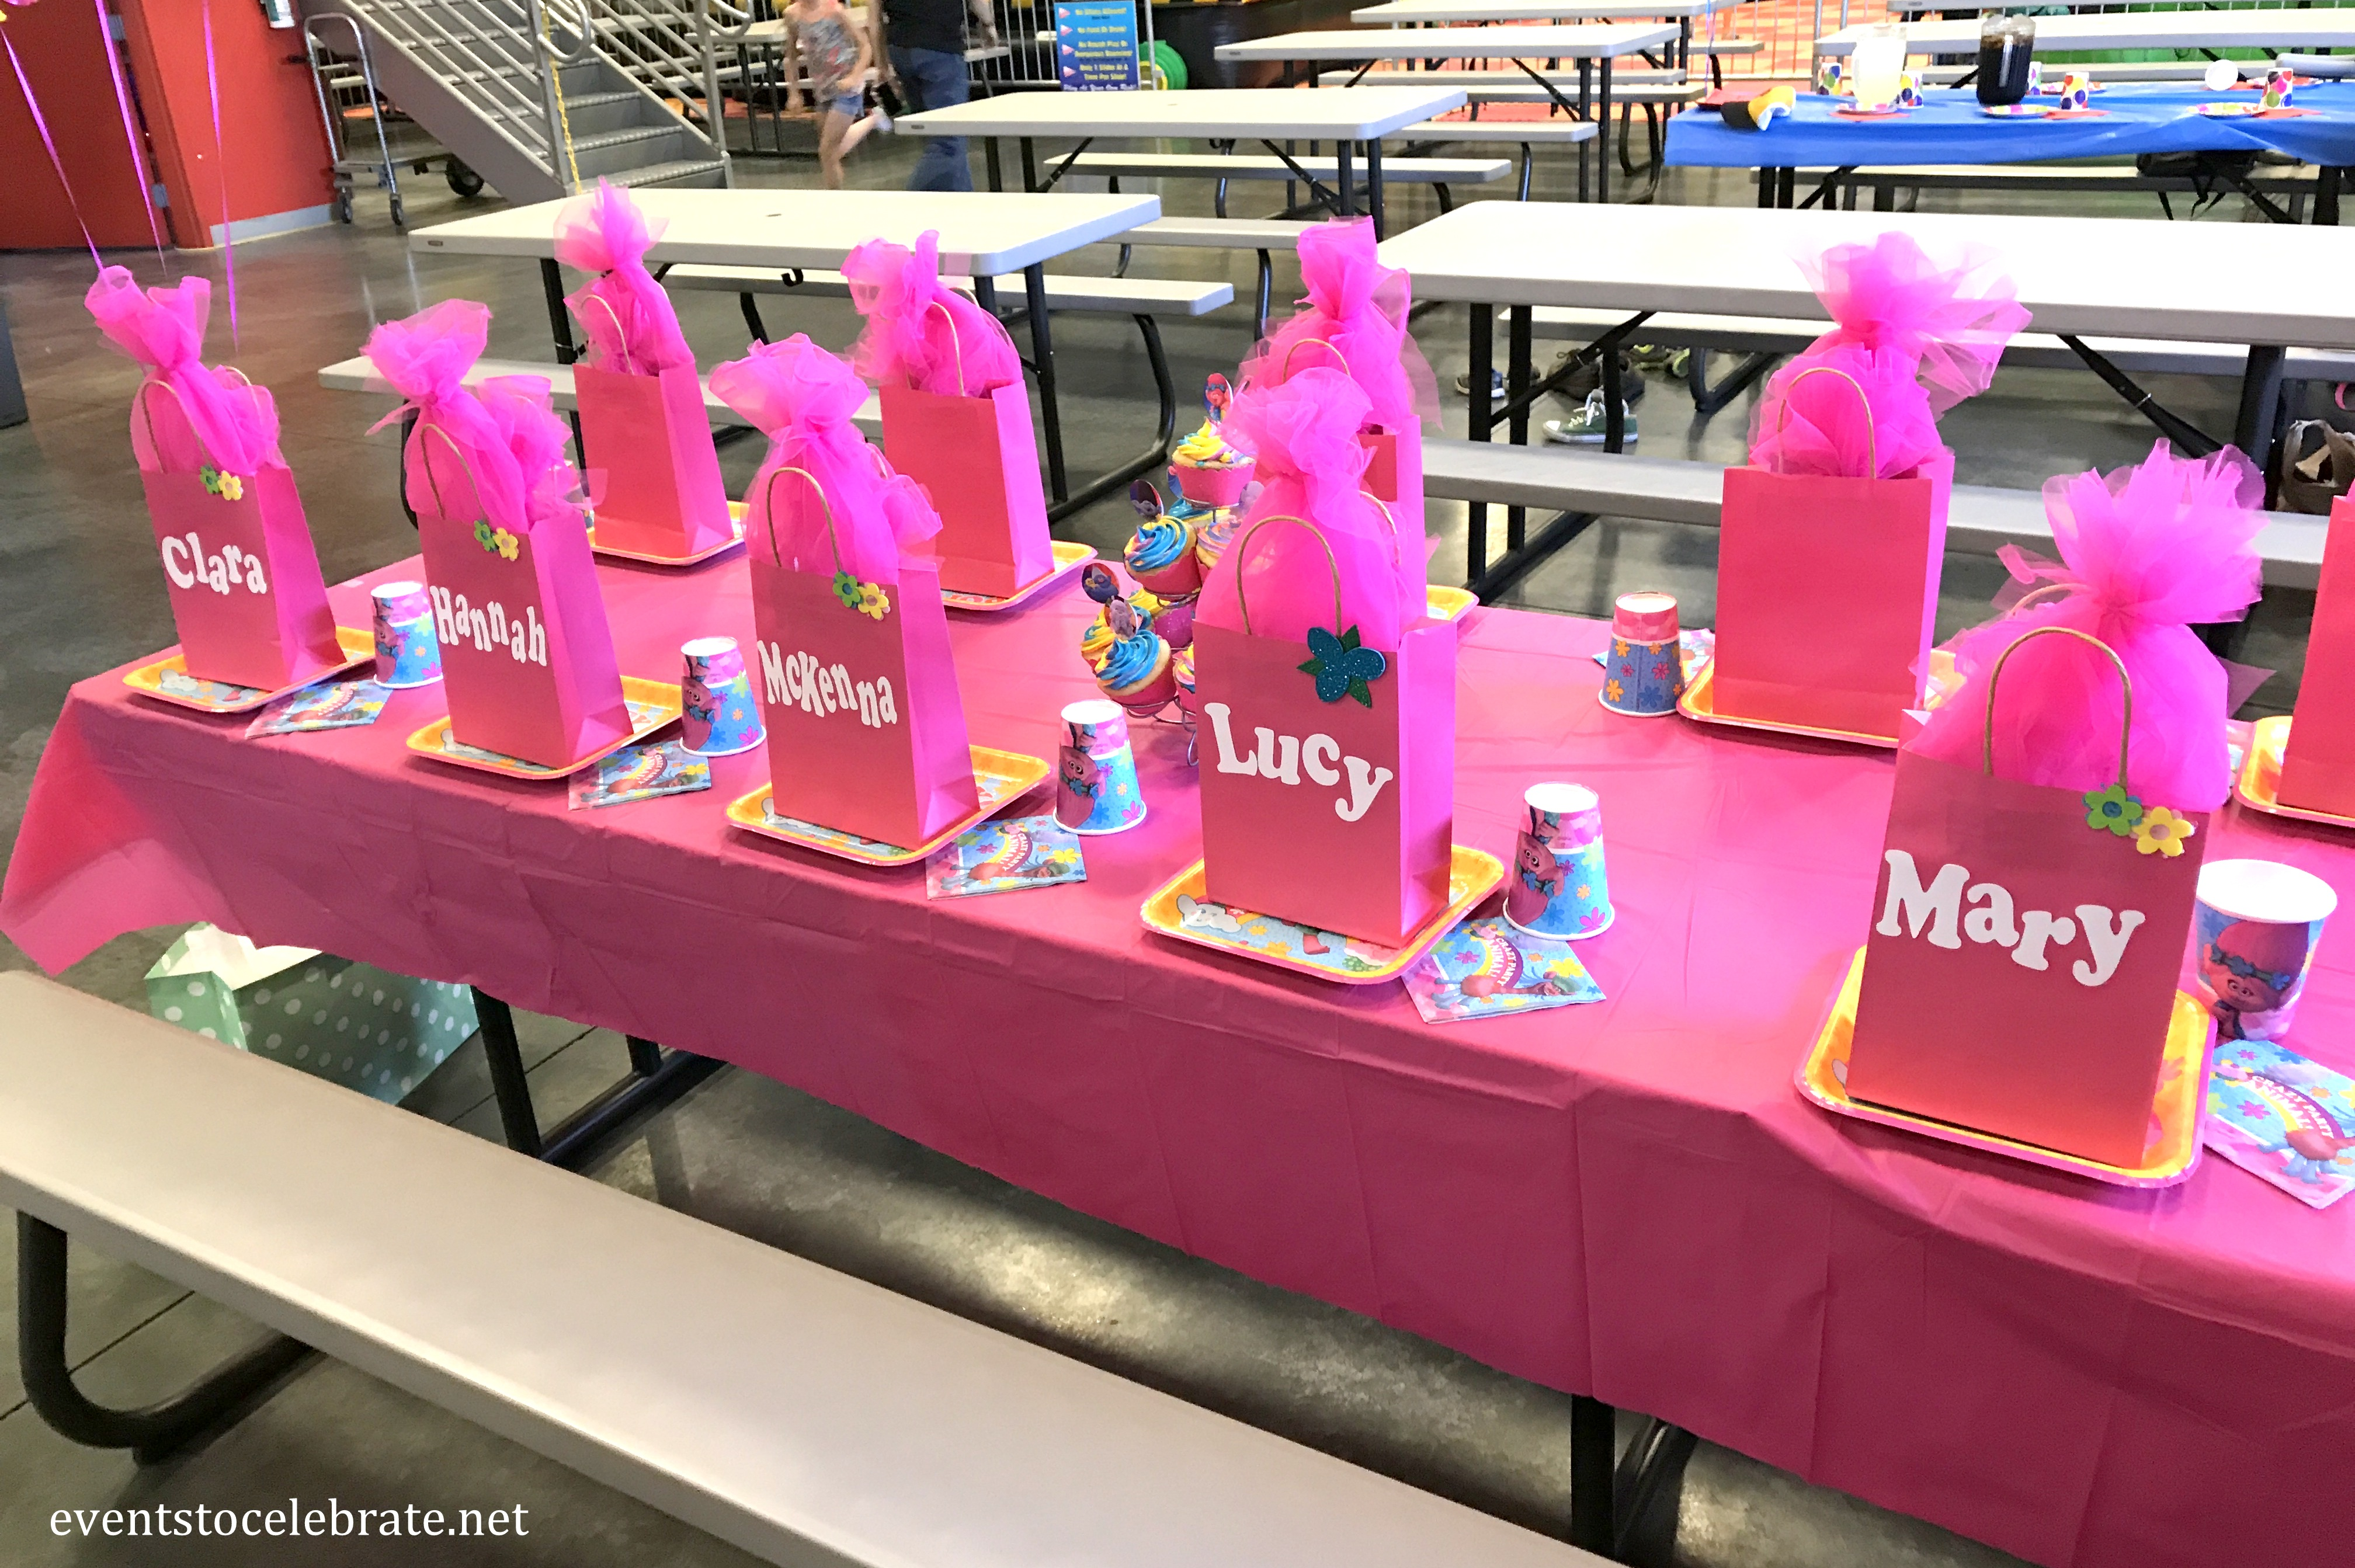 Fantastic Trolls Birthday Party Ideas Events To Celebrate Cakes Cupcakes Archives Events To Trolls Birthday Party Food Ideas Trolls Branch Birthday Party Ideas ideas Trolls Birthday Party Ideas